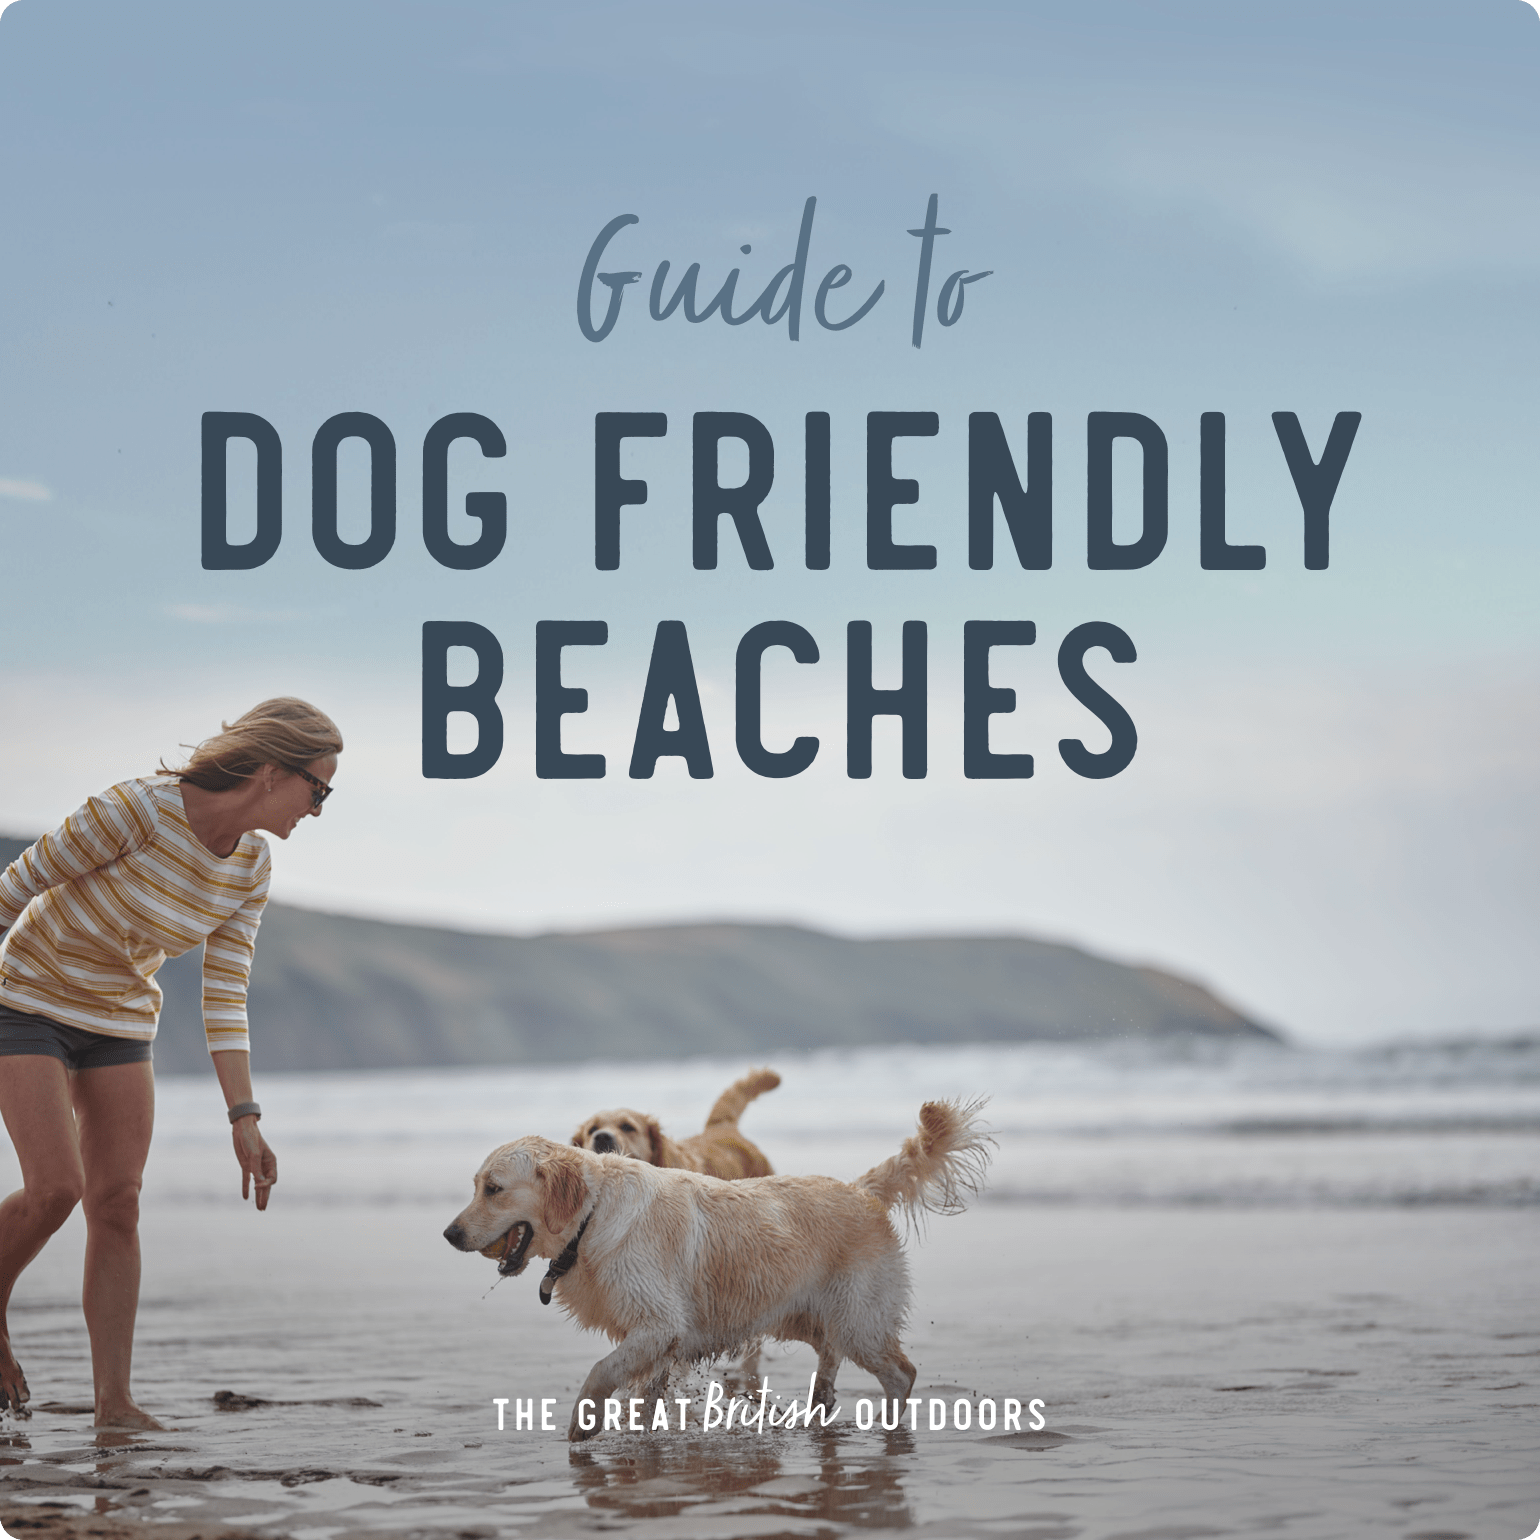 Guide to dog-friendly beaches in the UK